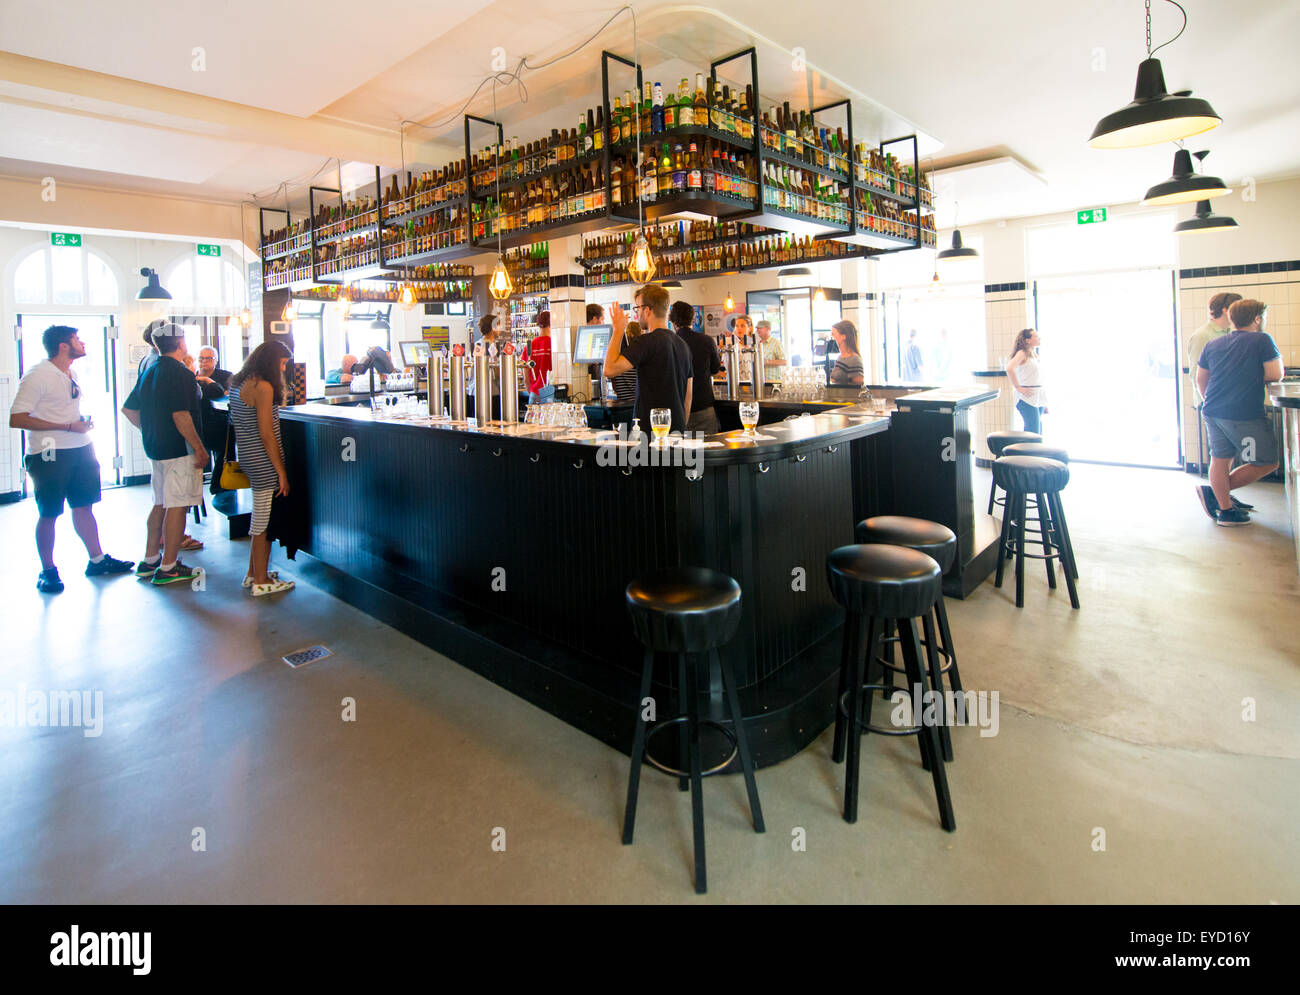 The Brouwerij 't IJ microbrewery in East Amsterdam - Stock Image